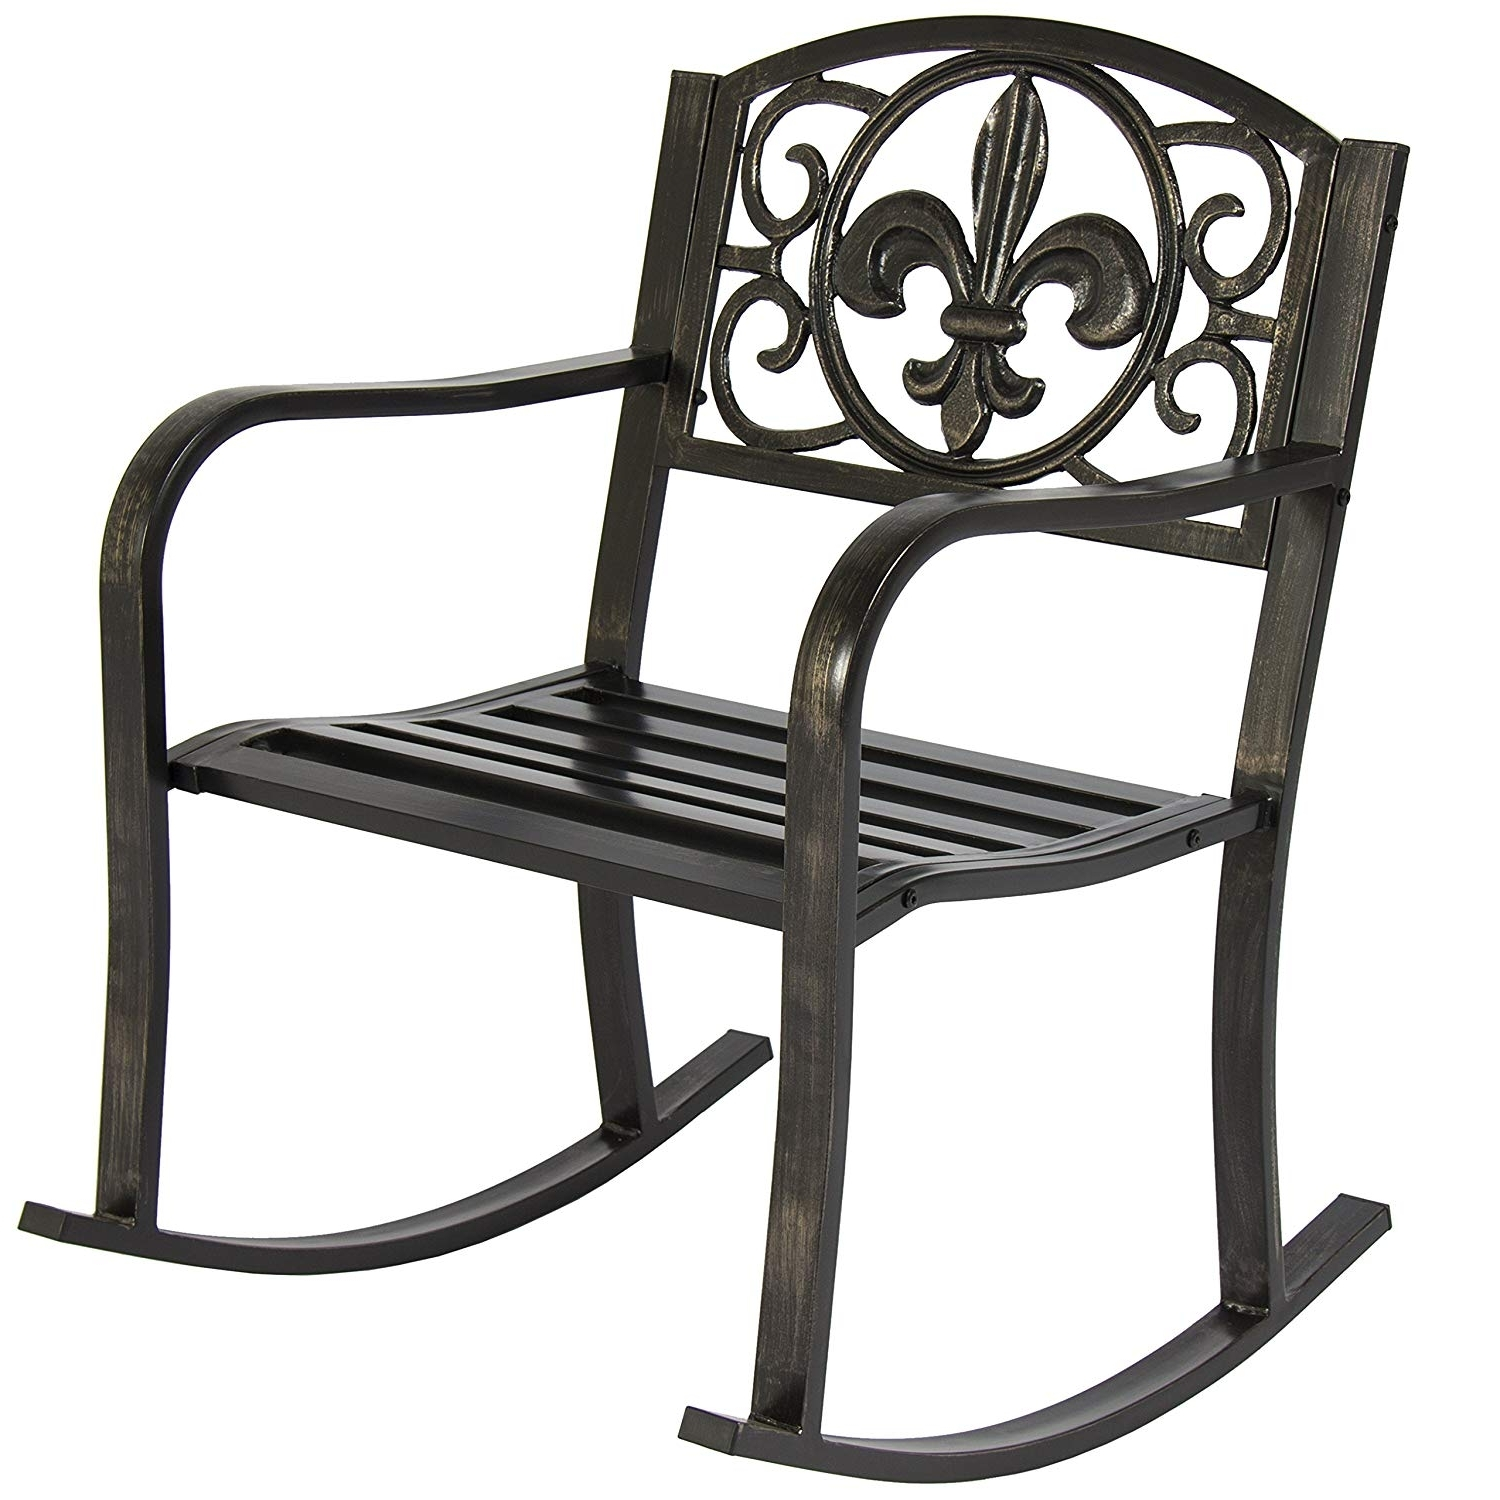 Trendy Amazon : Best Choice Products Metal Rocking Chair Seat For Patio With Regard To Outdoor Patio Metal Rocking Chairs (View 13 of 15)